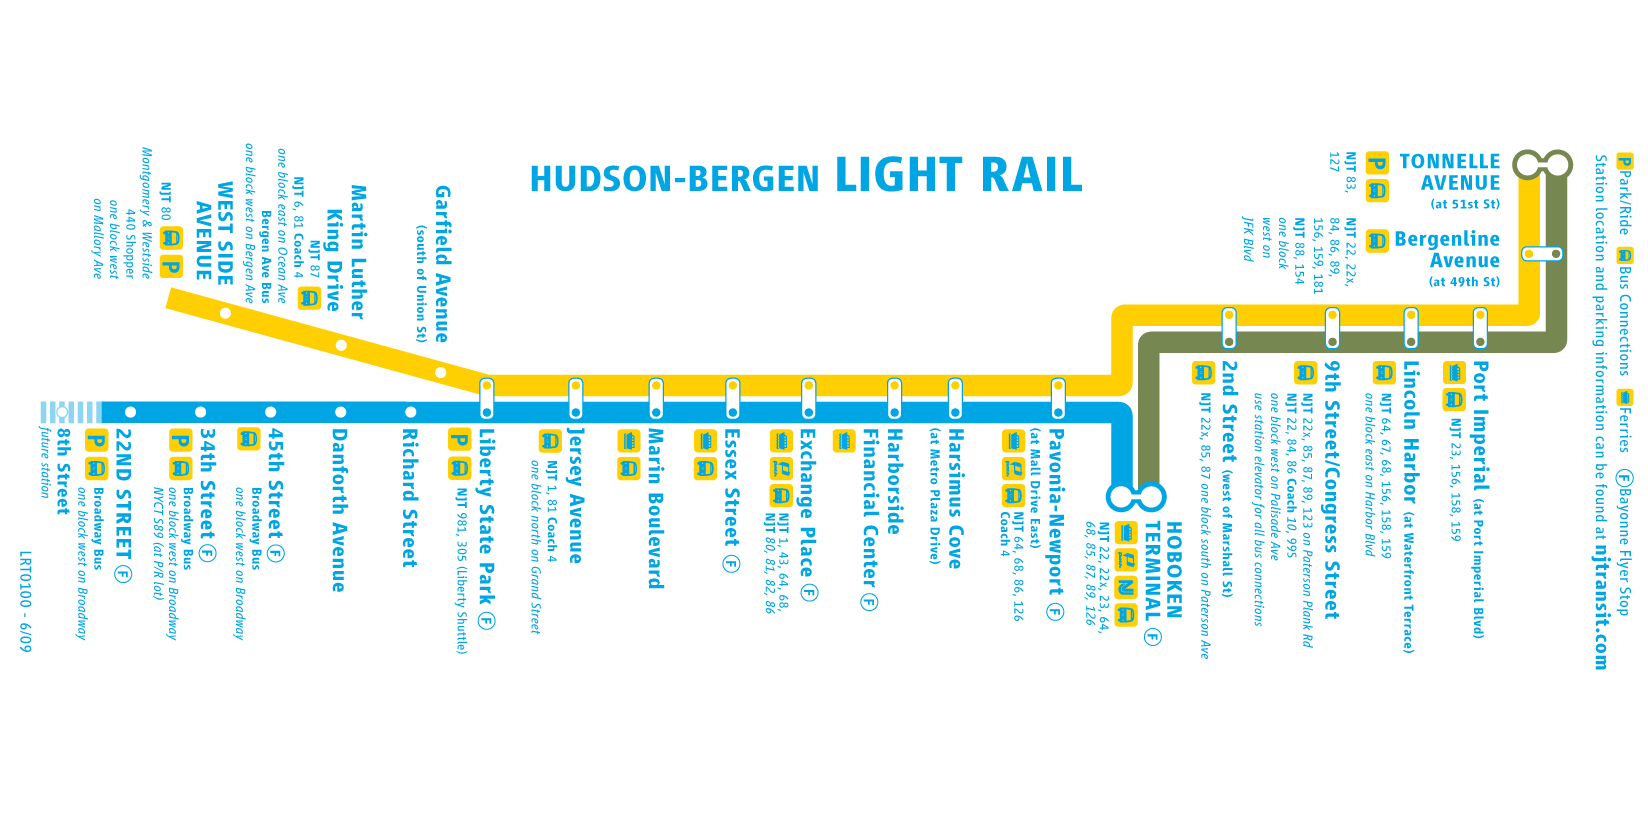 Light Rail Nj Map Hudson Bergen Light Rail Map • Mapsof.net